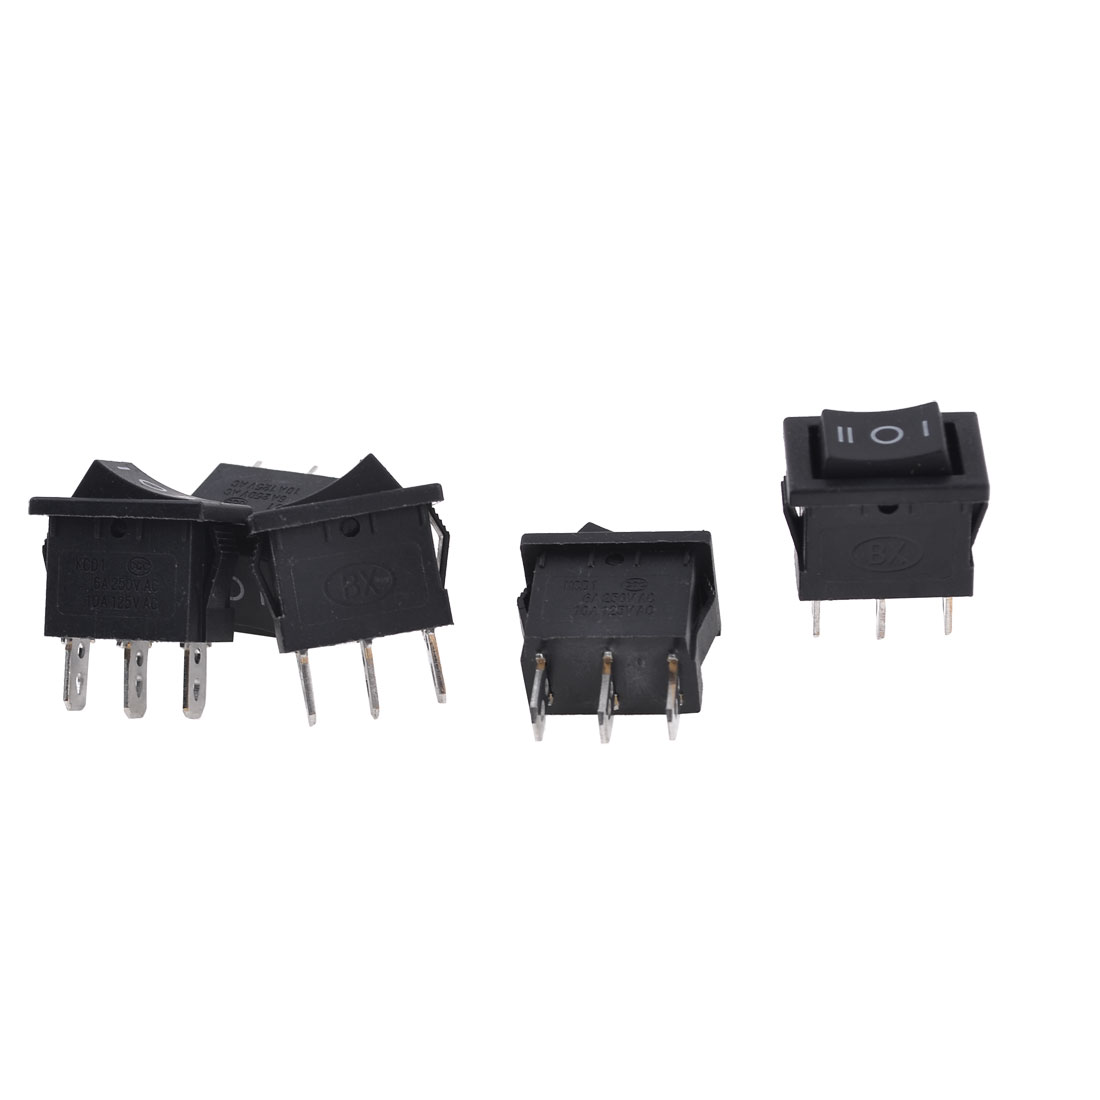 5 Pieces Black AC 250V/6A 125V/10A 3 Pin SPDT on/off/on Rocker Switches